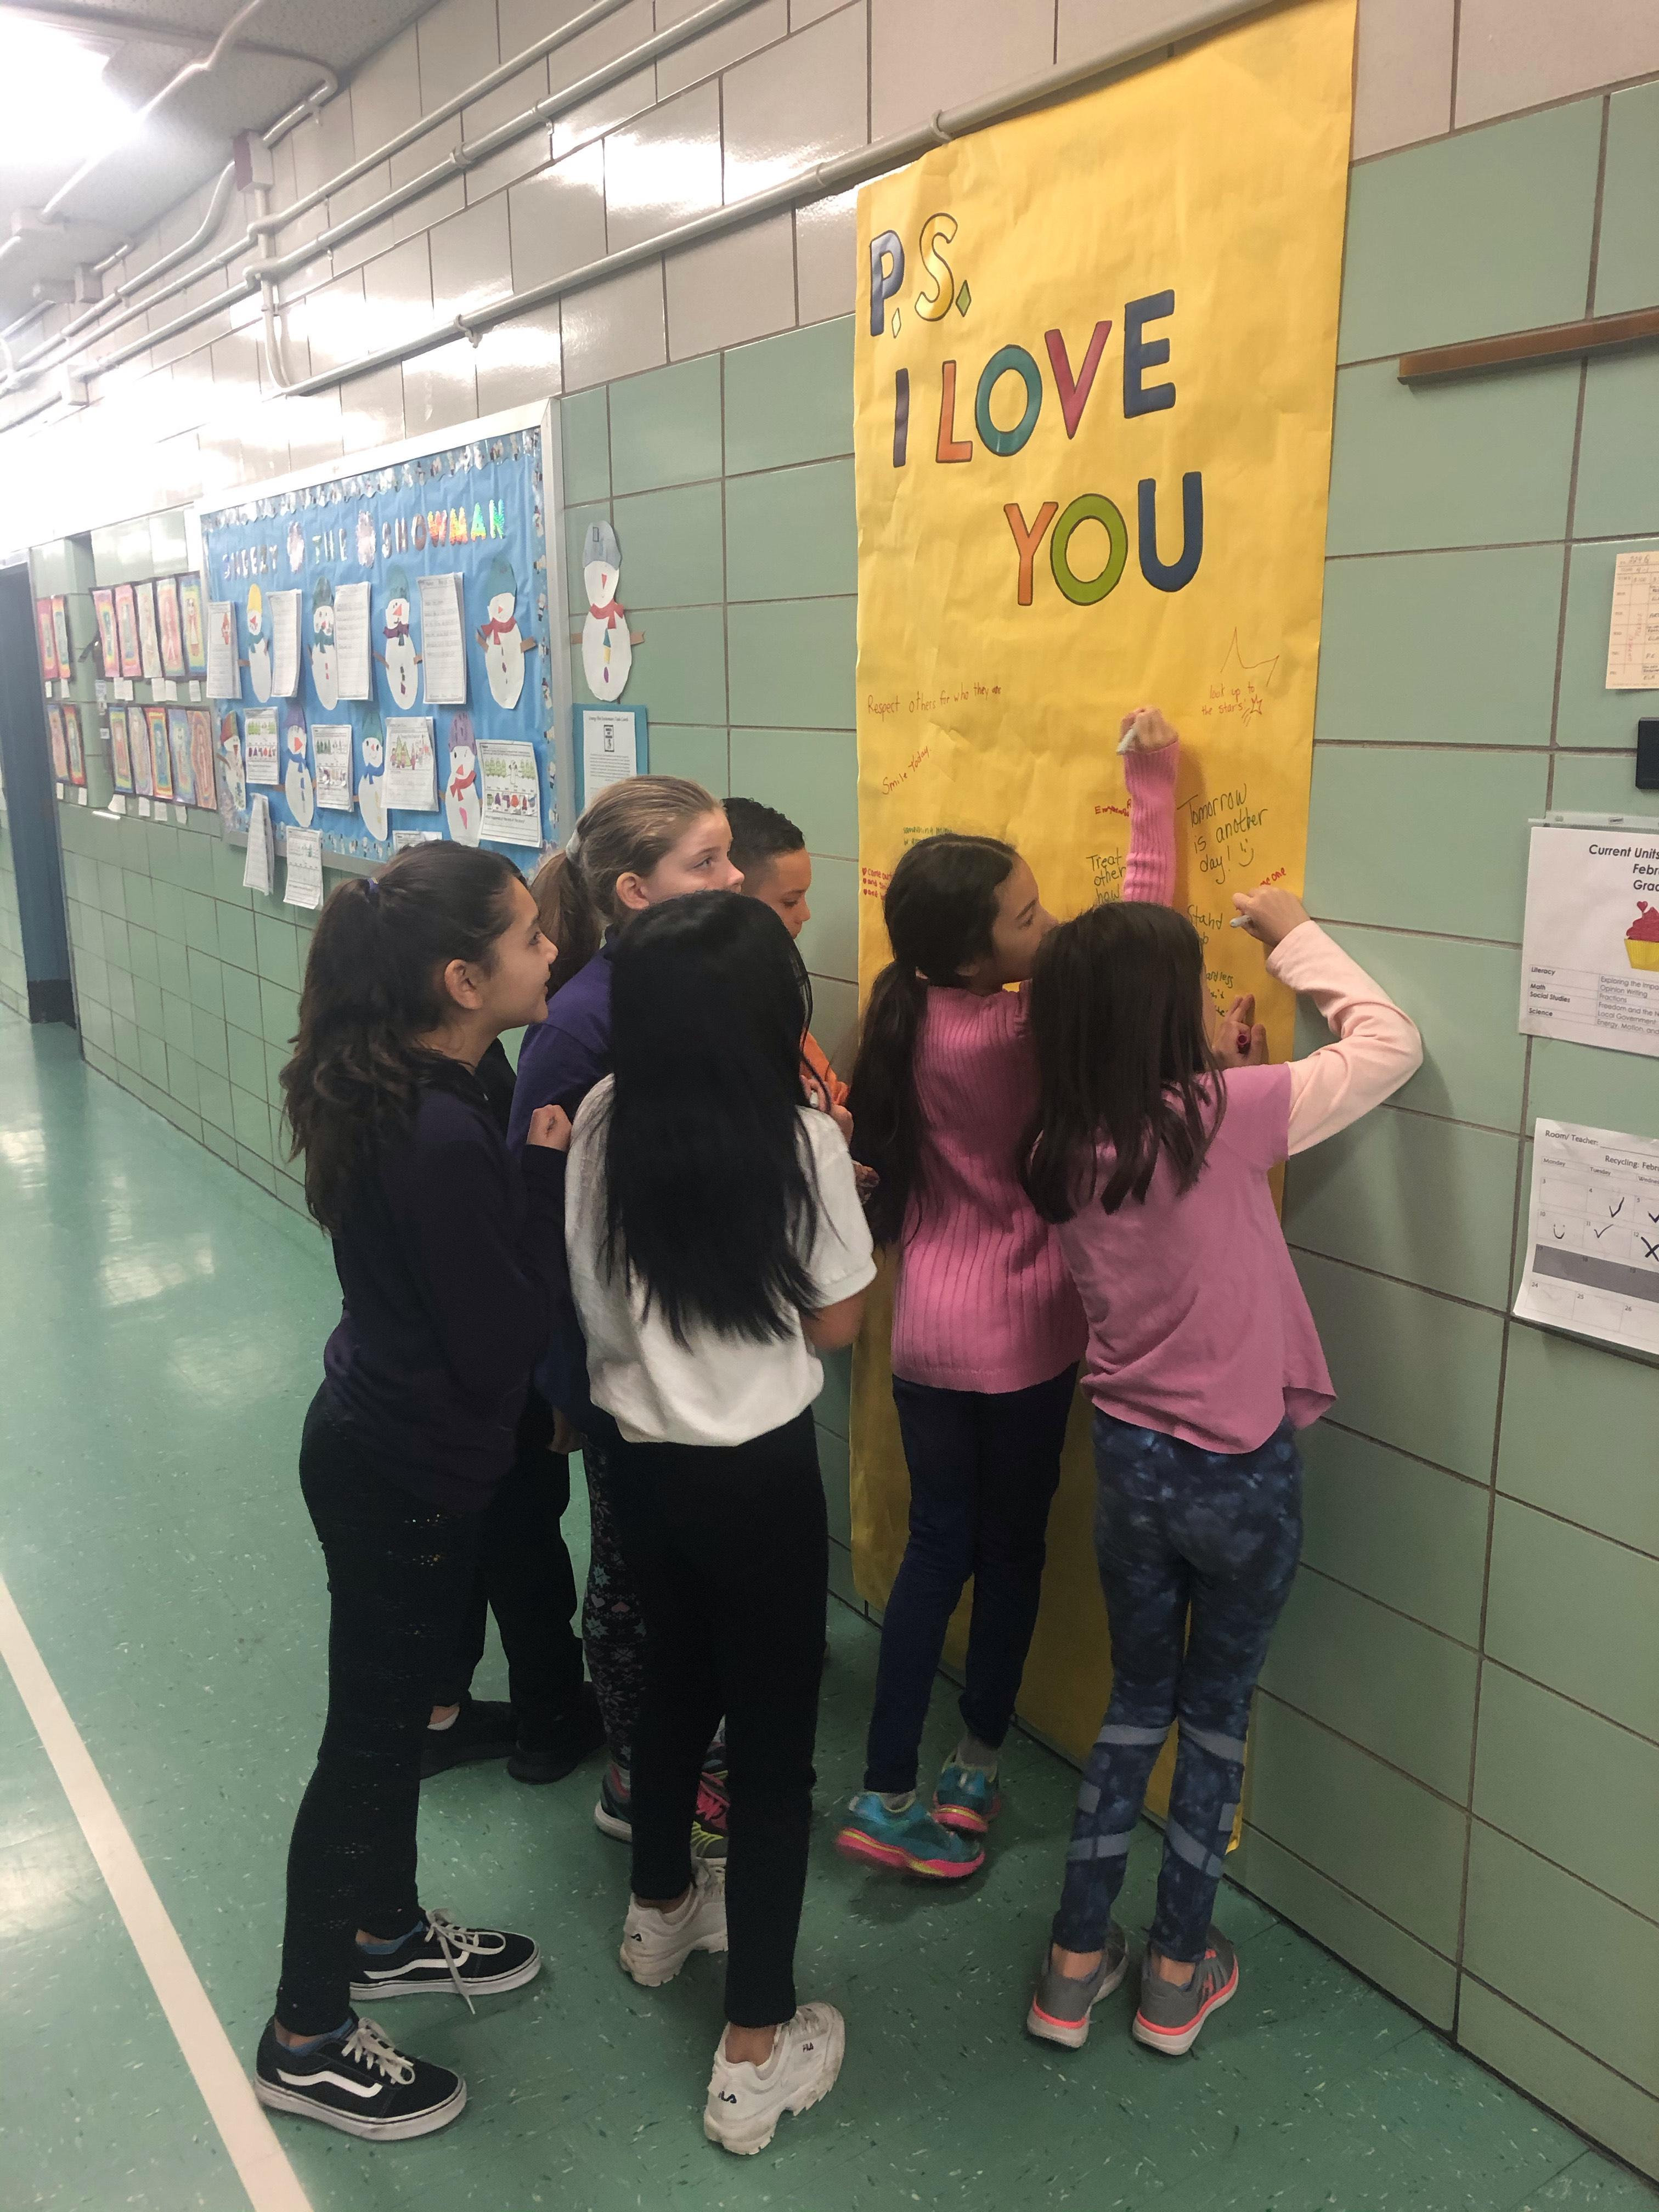 students in school hallway writing messages of support on butcher paper for PS I Love You Day